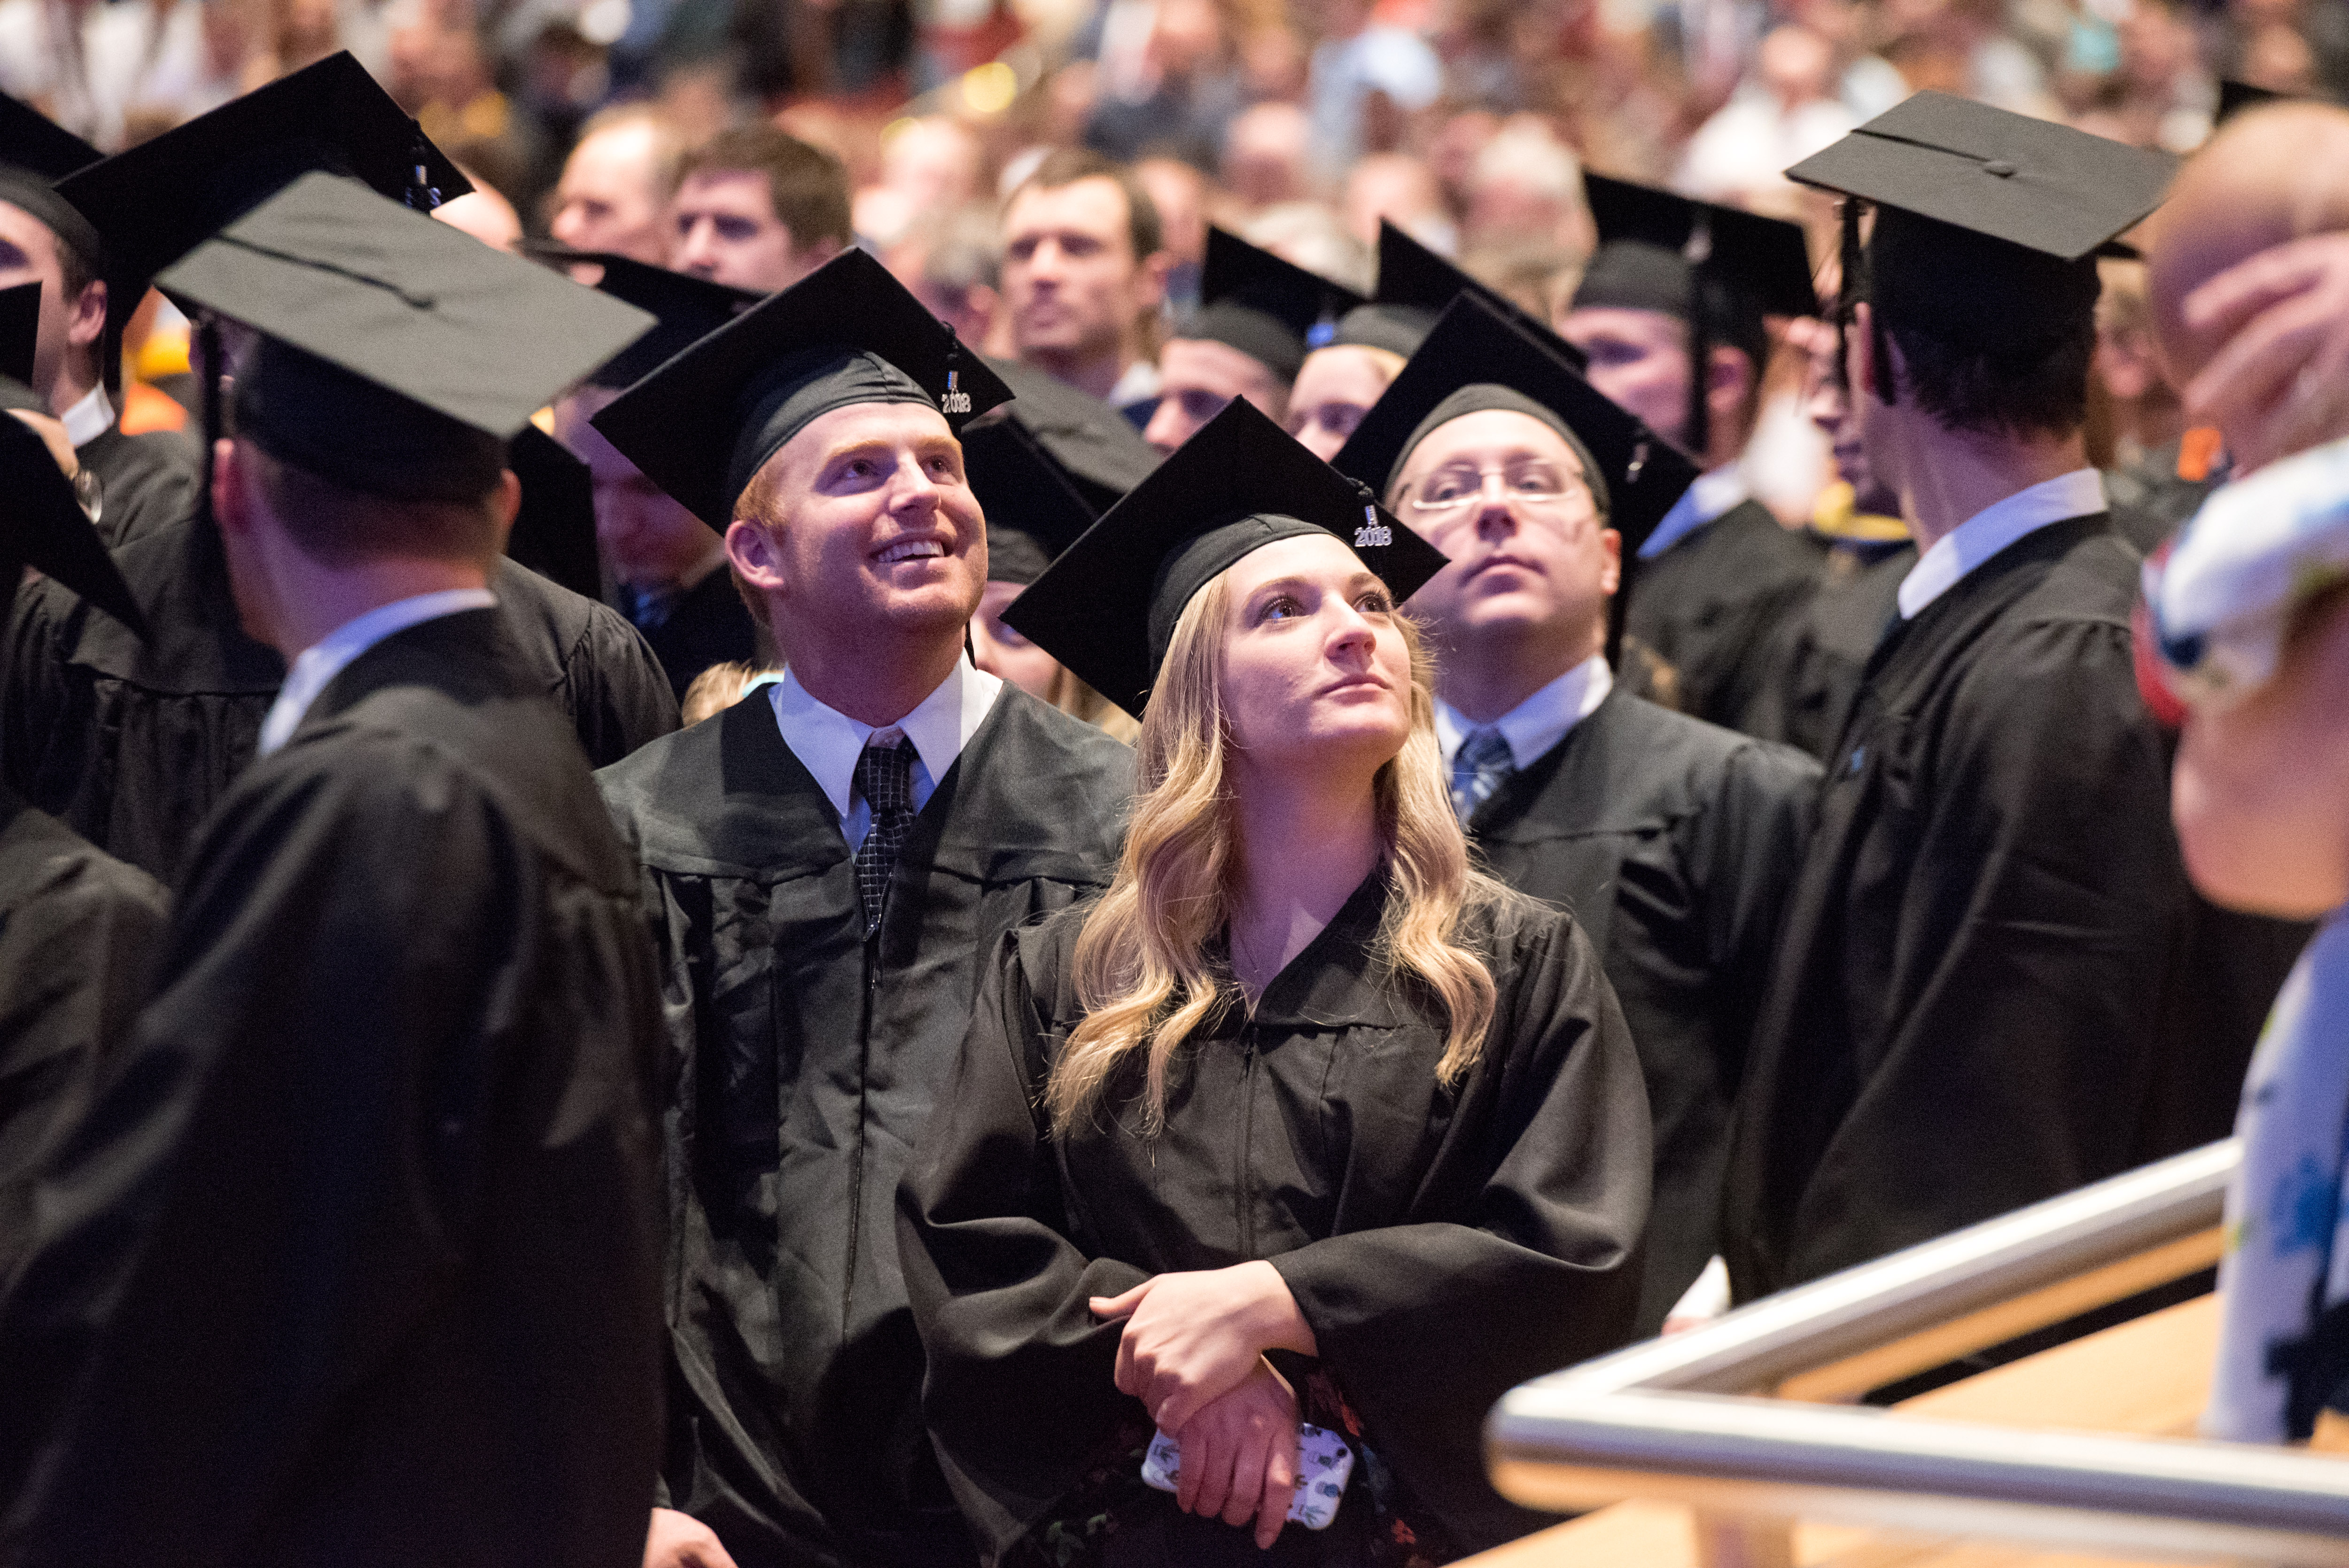 BYU-Idaho graduates gather in the BYU-Idaho Center for commencement on Dec. 19, 2018.